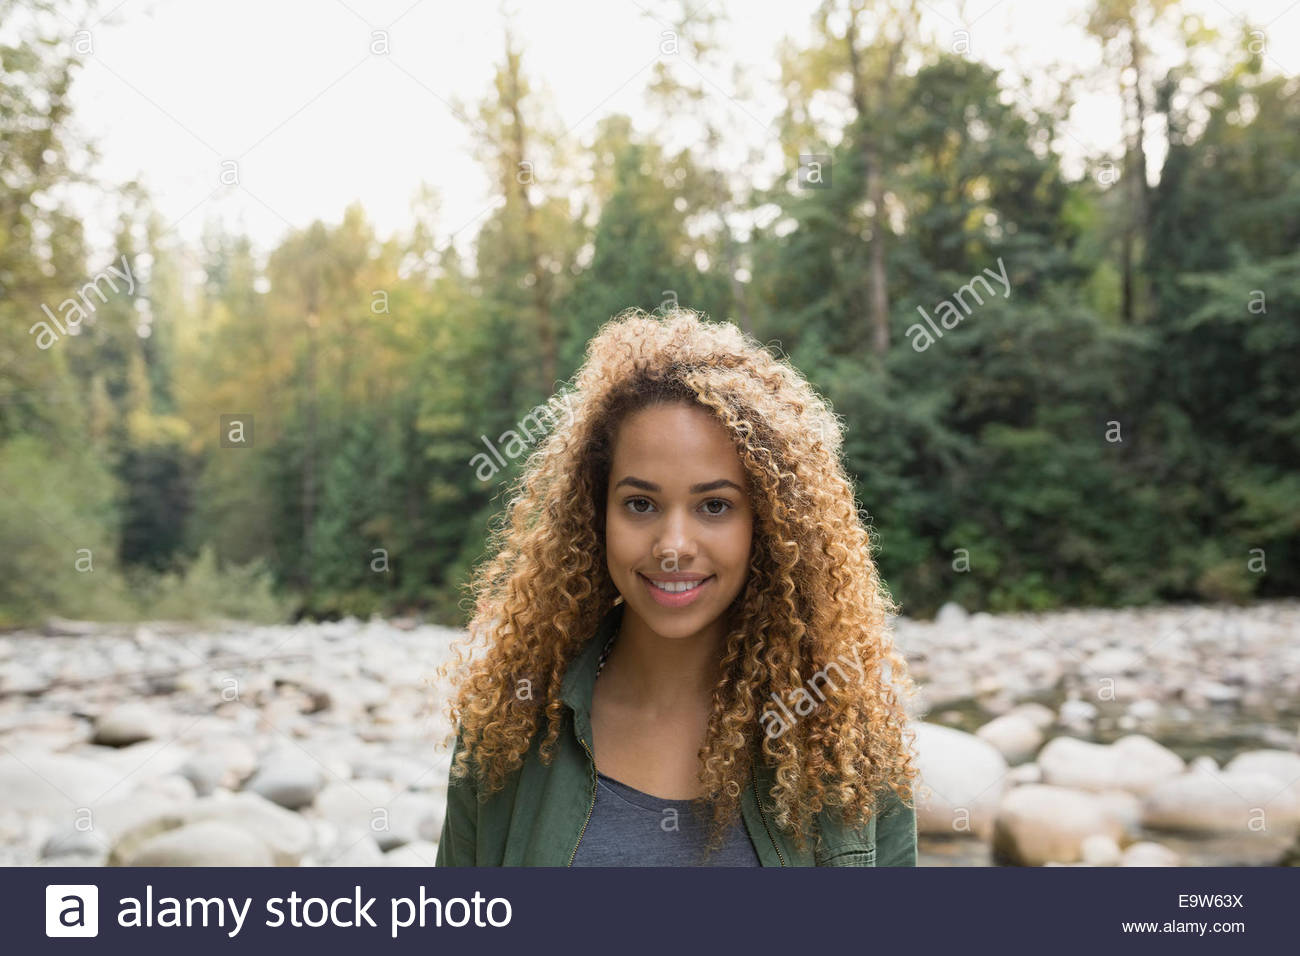 Portrait of smiling woman in woods - Stock Image